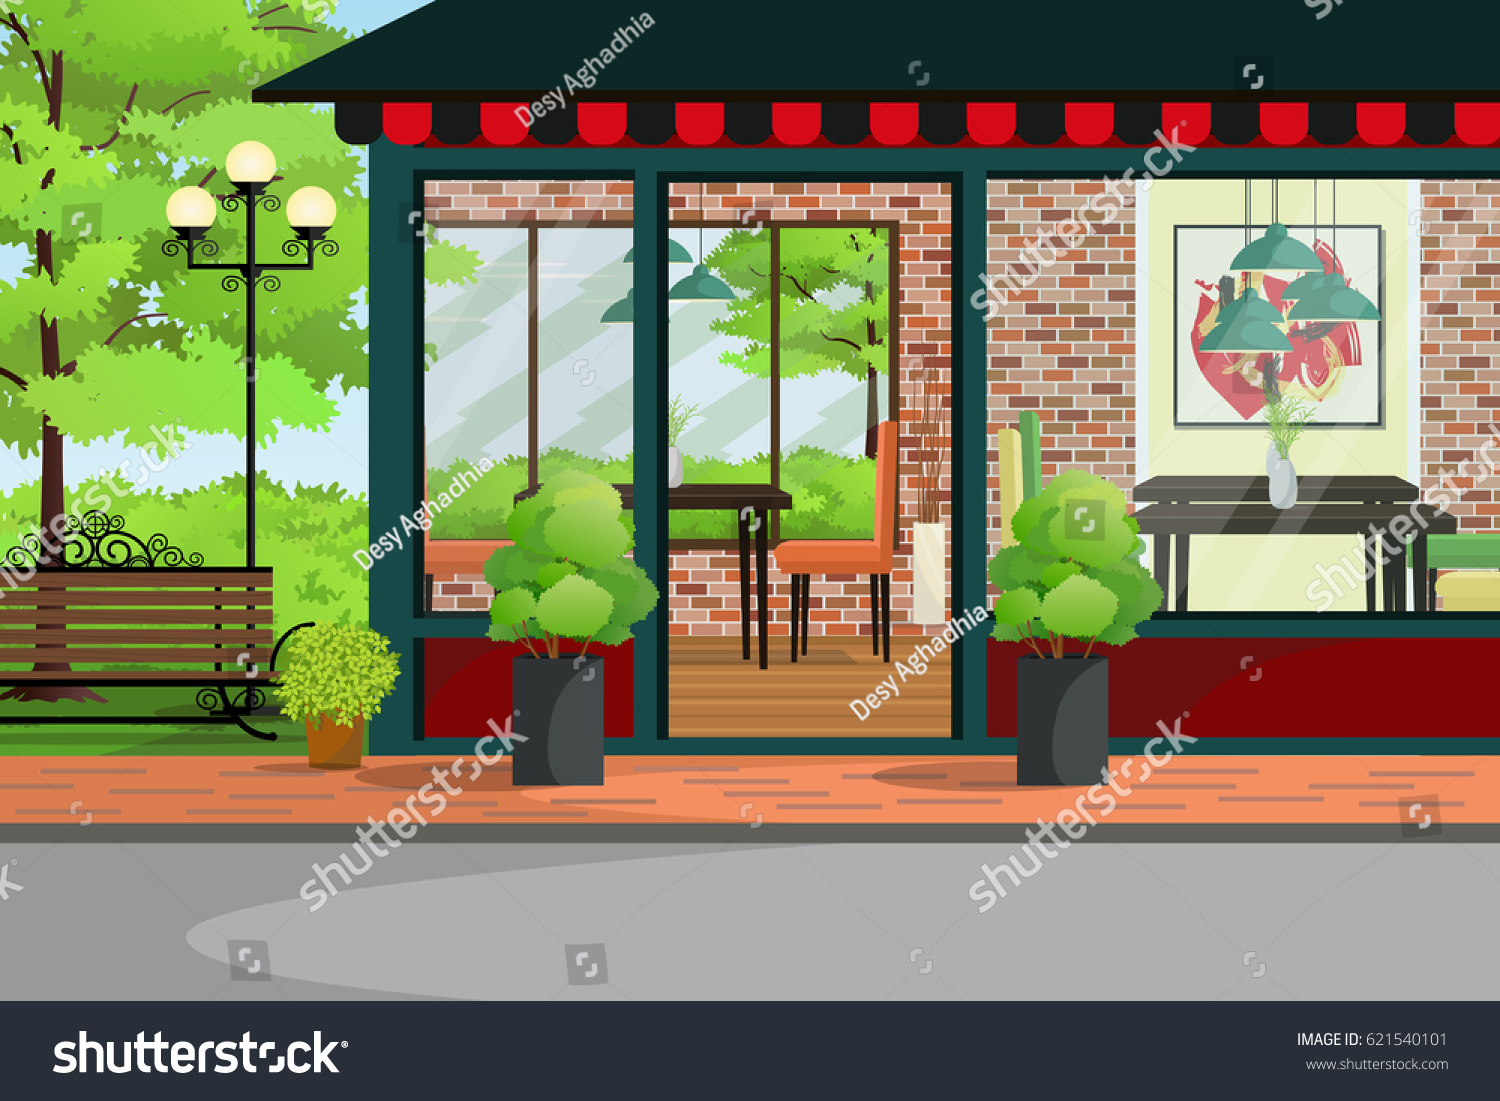 Cafe Restaurant Coffee Shop Building Green Stock Vector Royalty Free 621540101